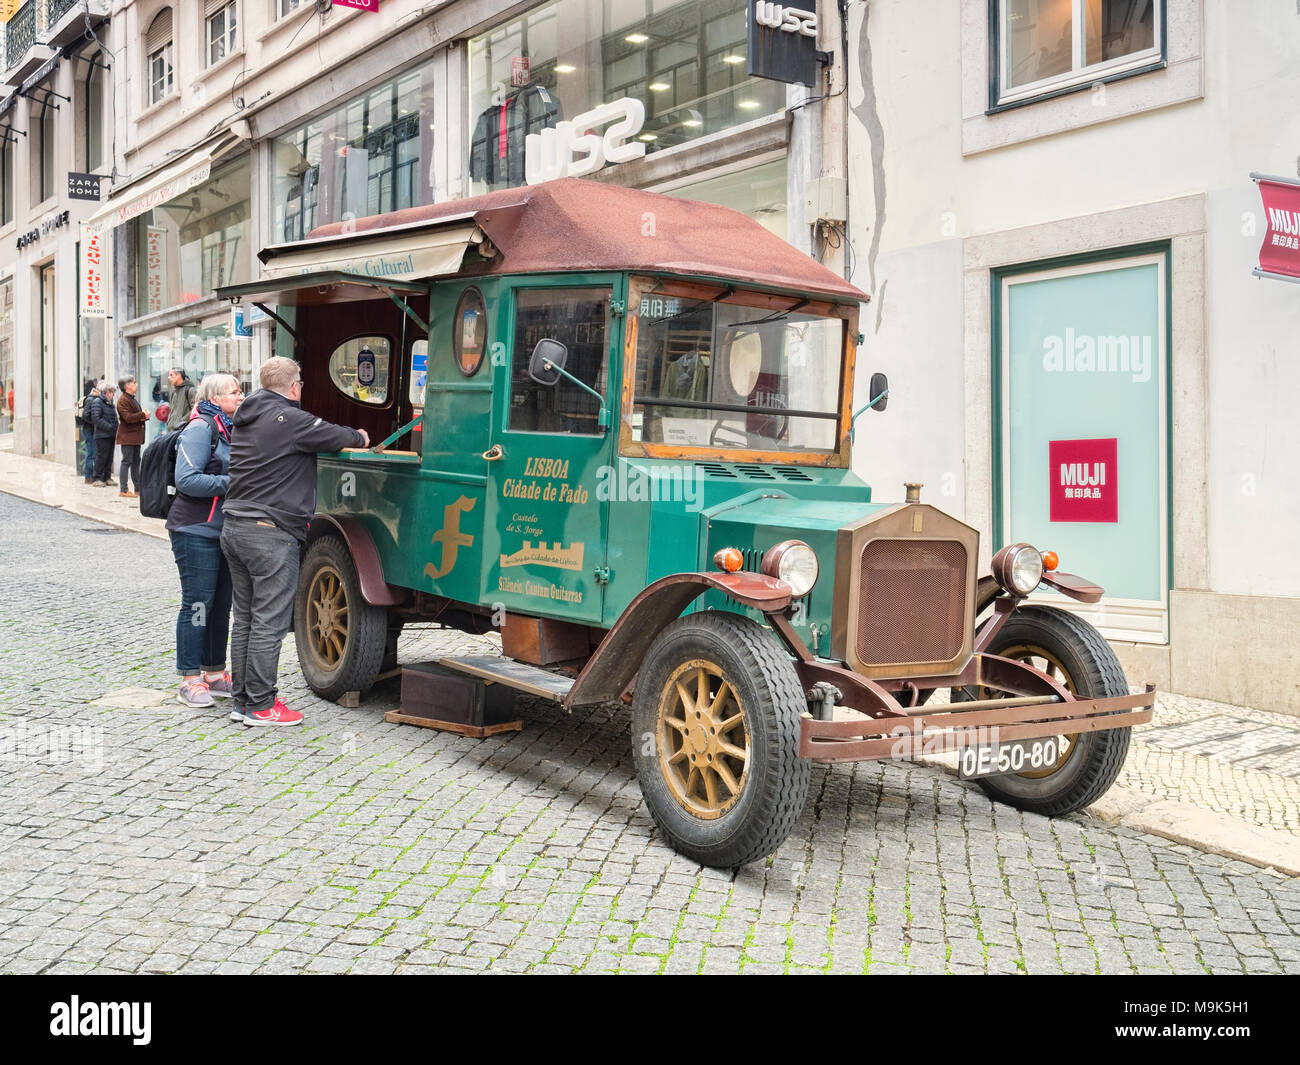 7 March 2018: Lisbon, Portugal - Mobile Fado music shop and disco, playing Fado music and selling CDs on the streets of the city. - Stock Image